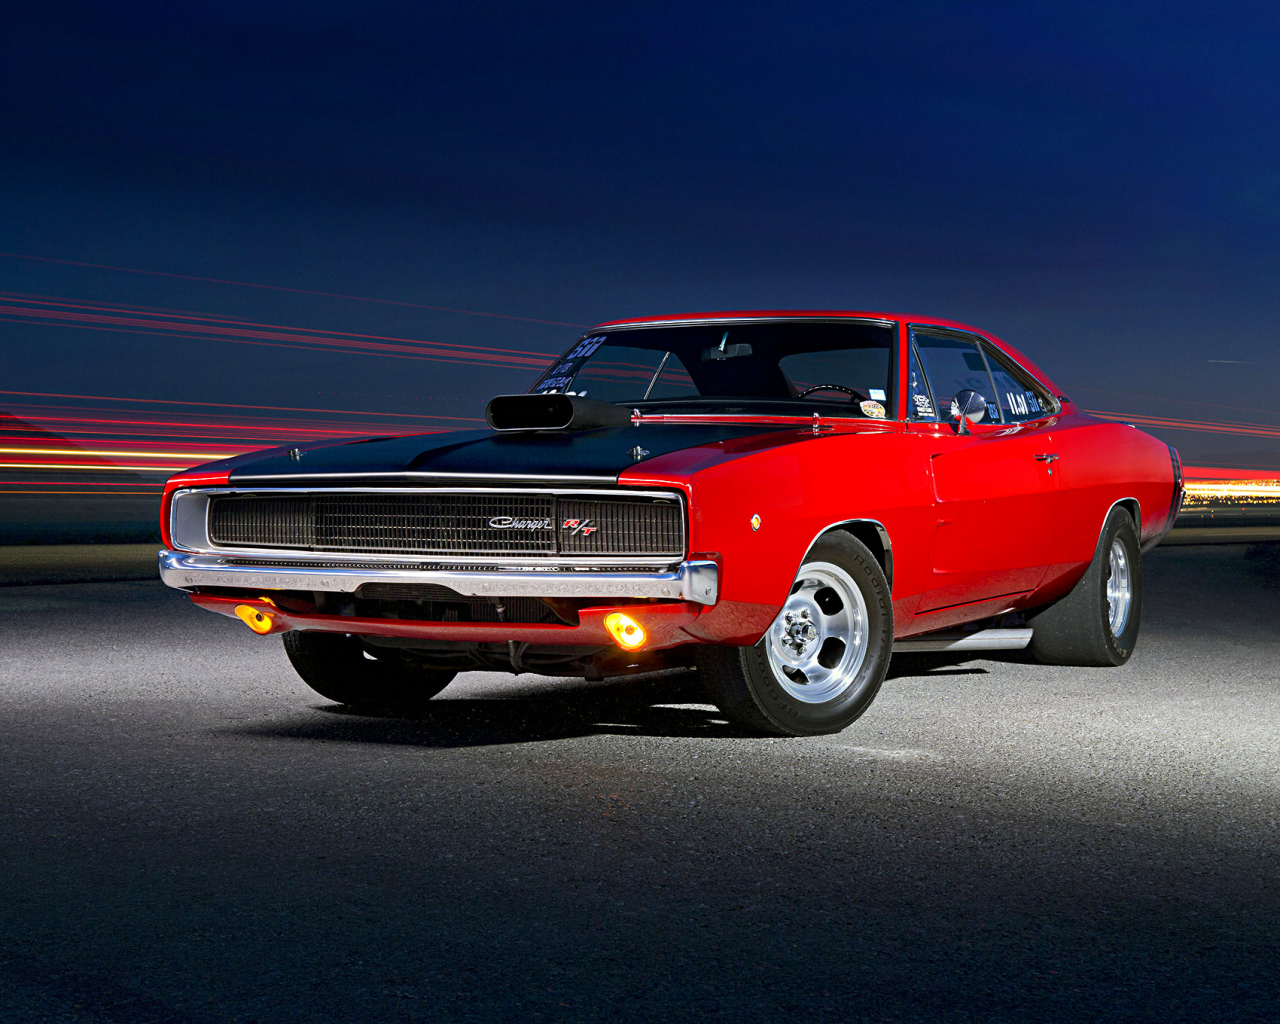 Desktop Wallpaper Classic Muscle Car Red Dodge Charger Hd Image Picture Background Zjtb0s